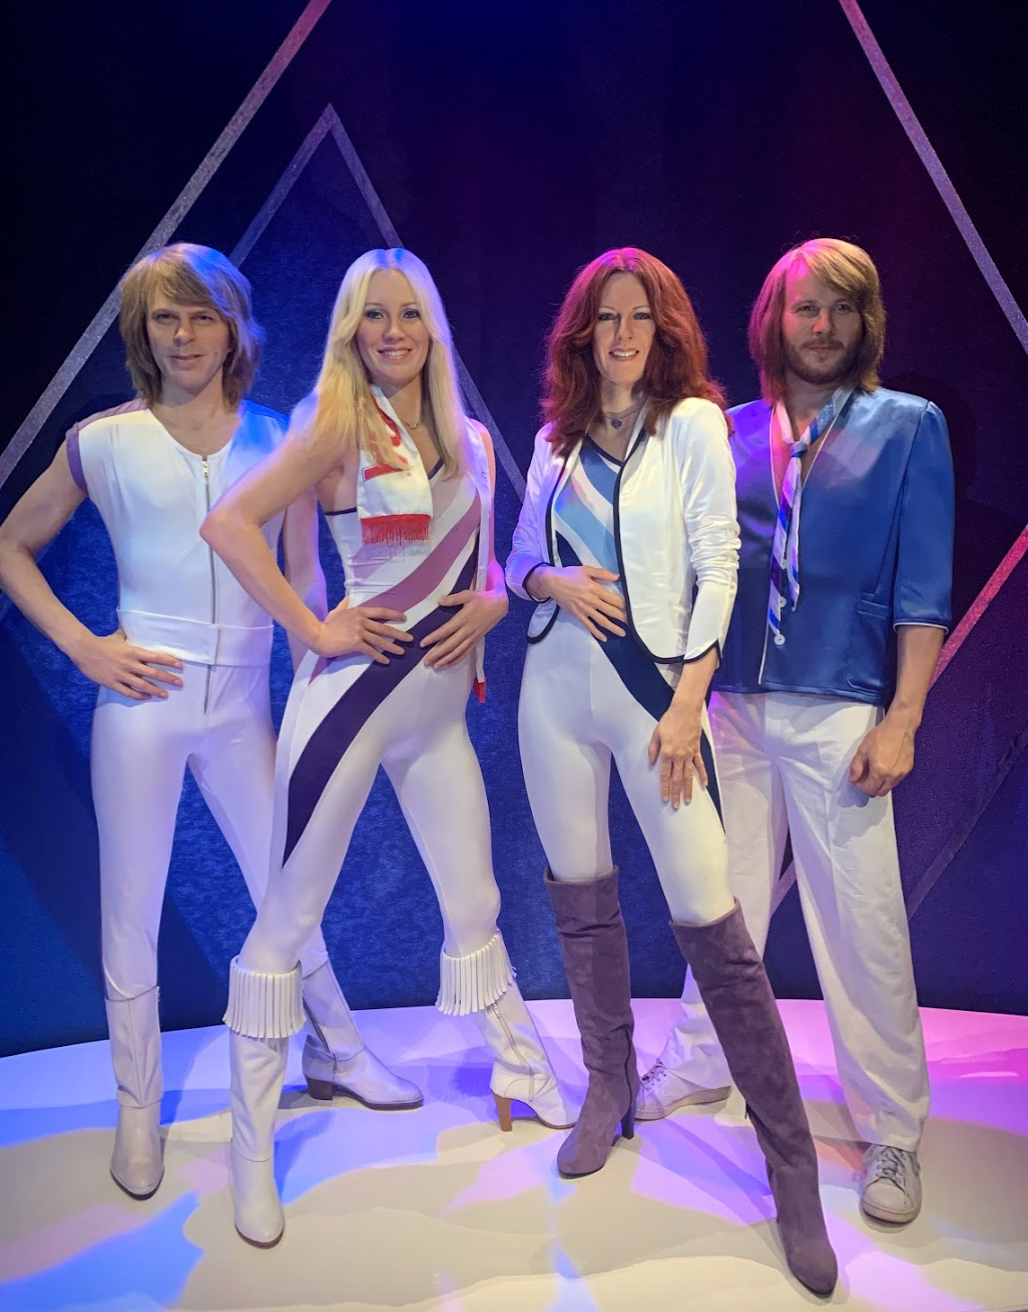 Abba figures in Stockholm, Sweden